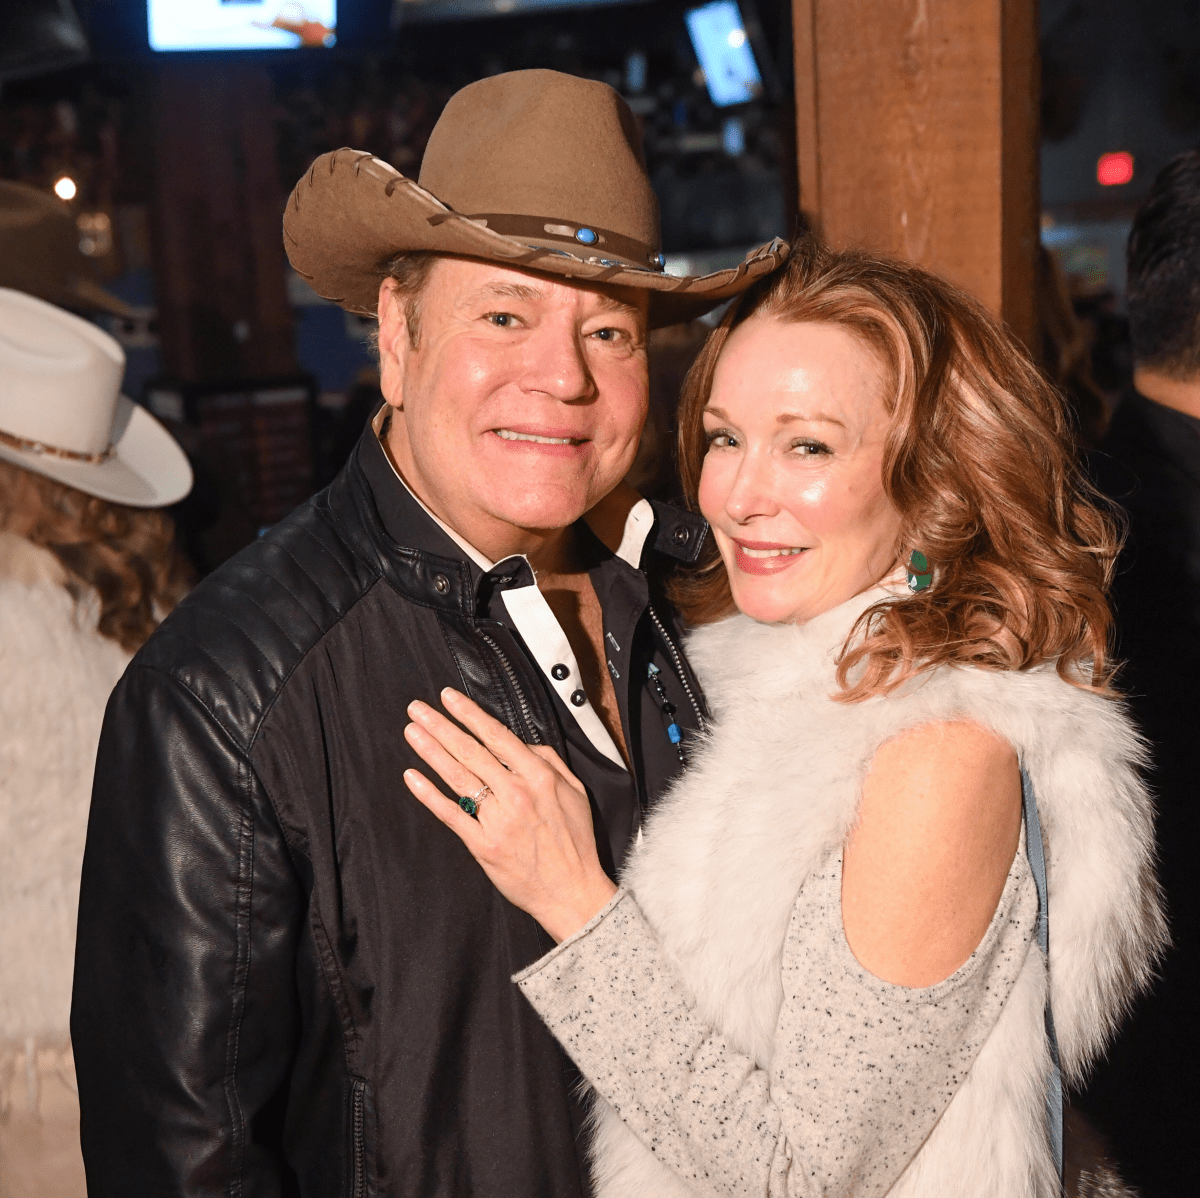 Houston, Kick Up Your Boots for Kids event, February 2018, Bubba McNeely, Holly Waltrip